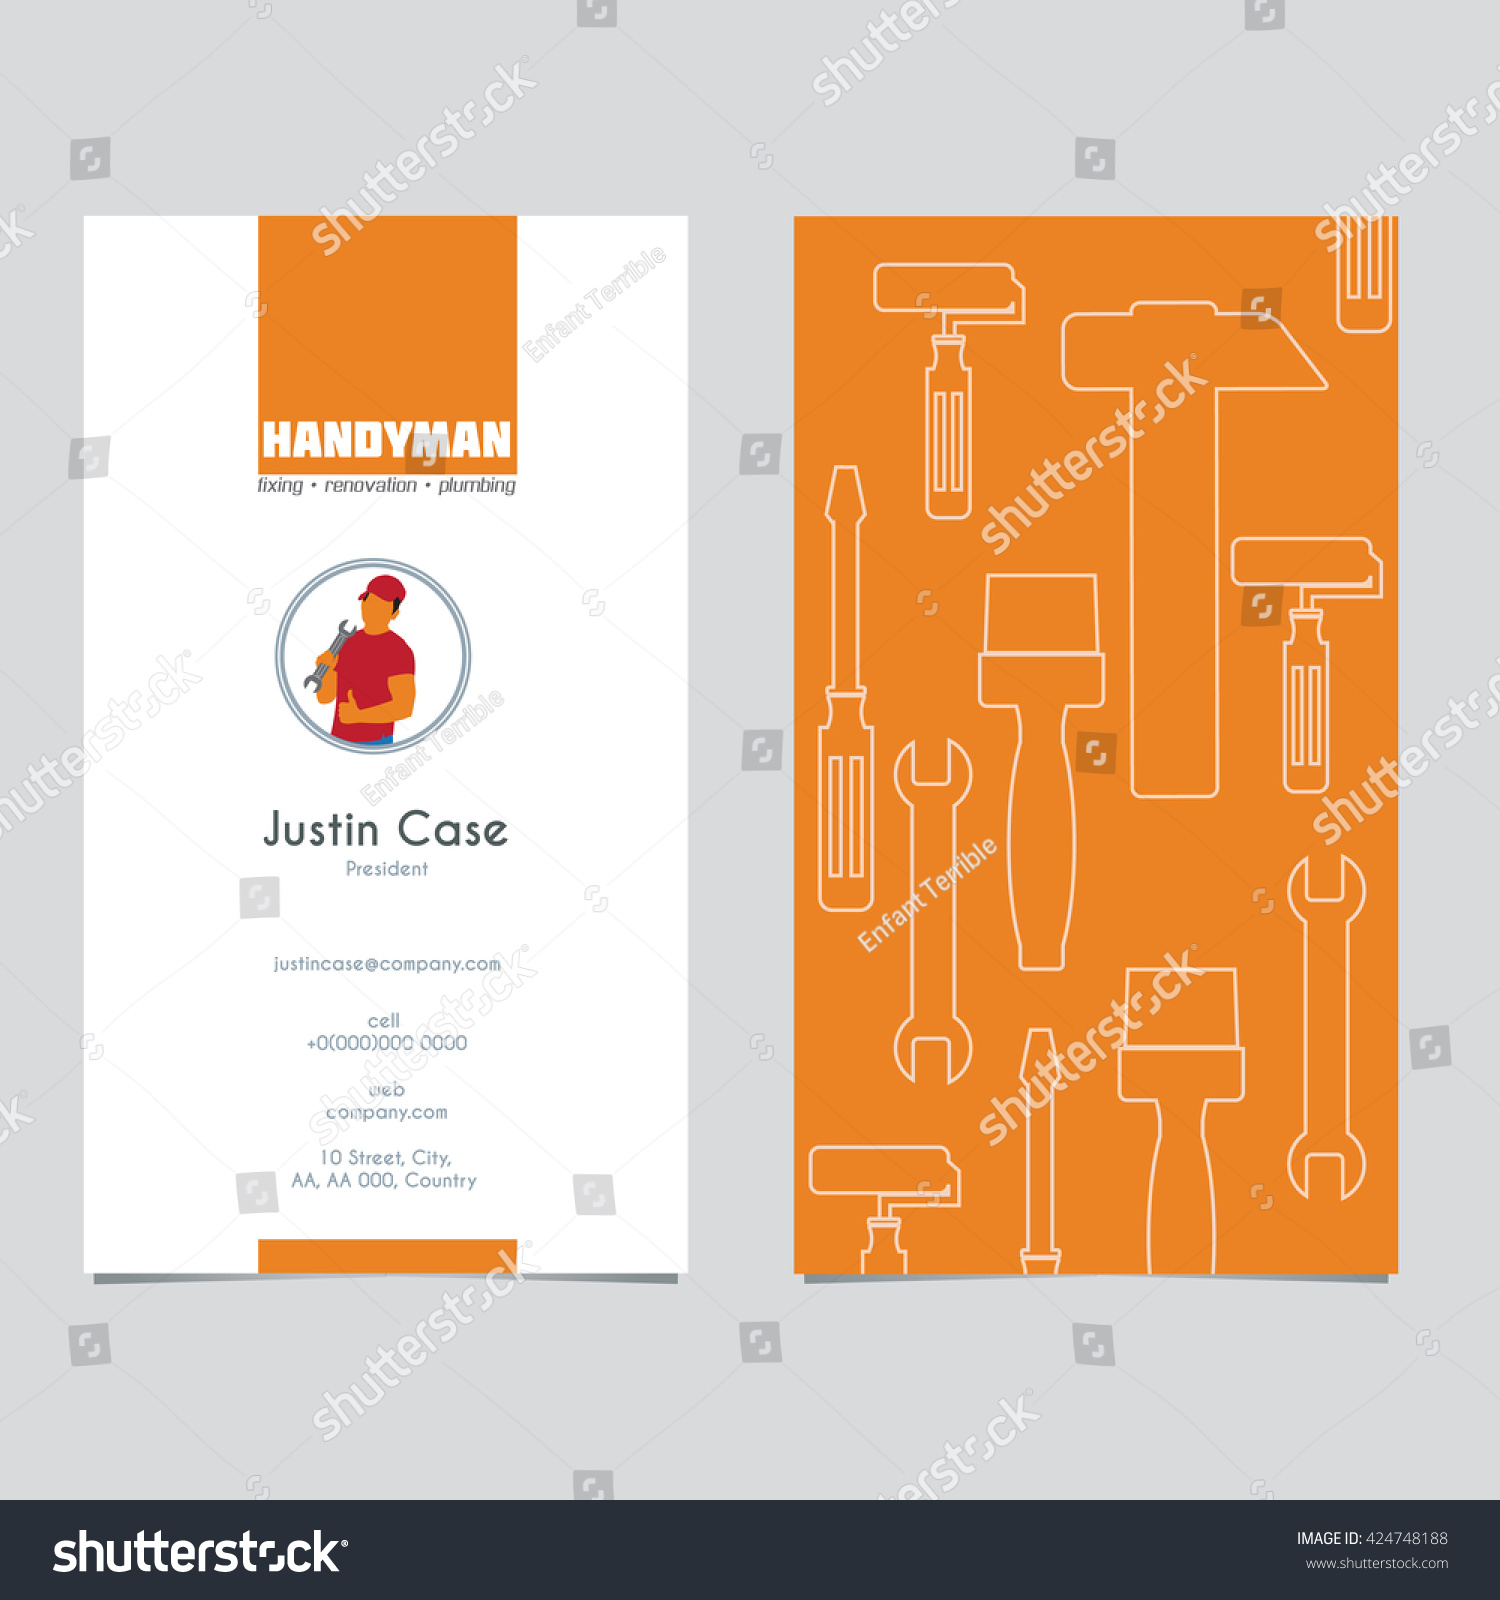 Handyman Business Sign Business Card Template Stock Vector